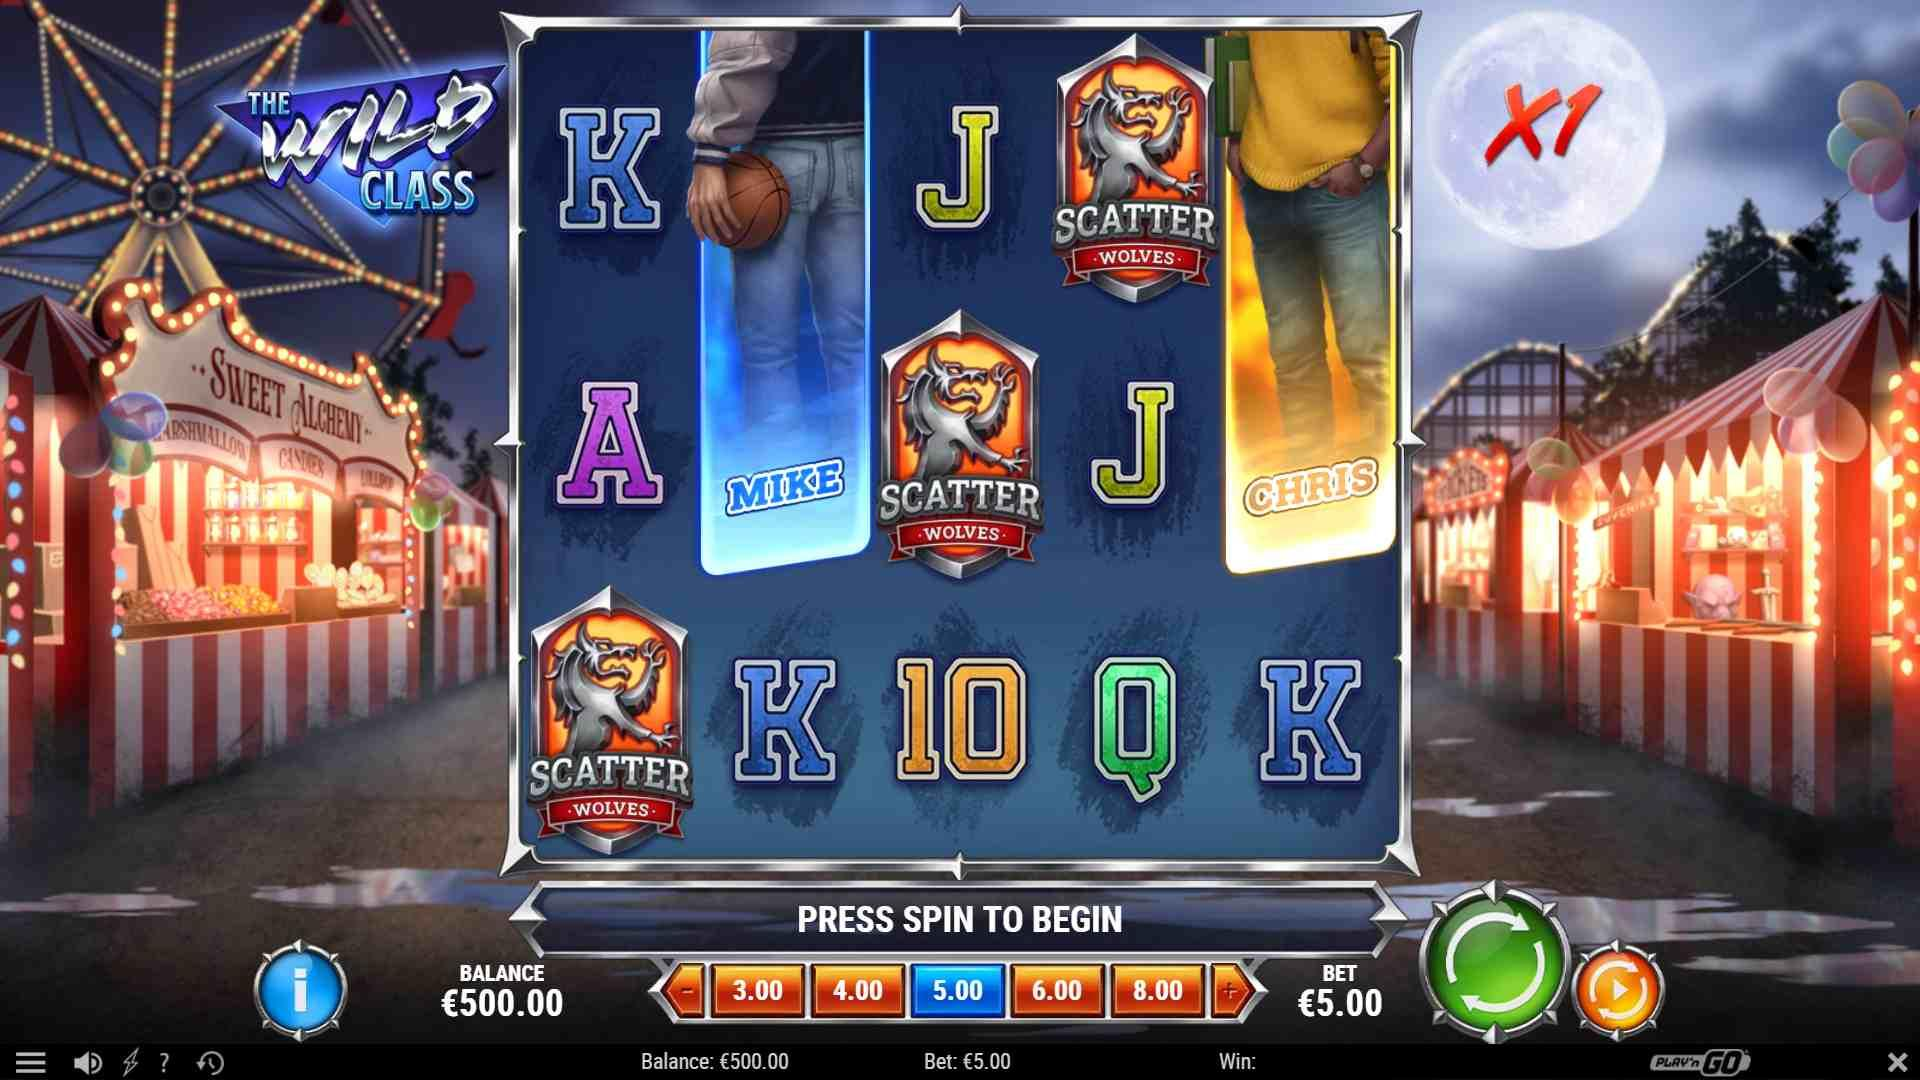 The Wild Class Slot Free Spins